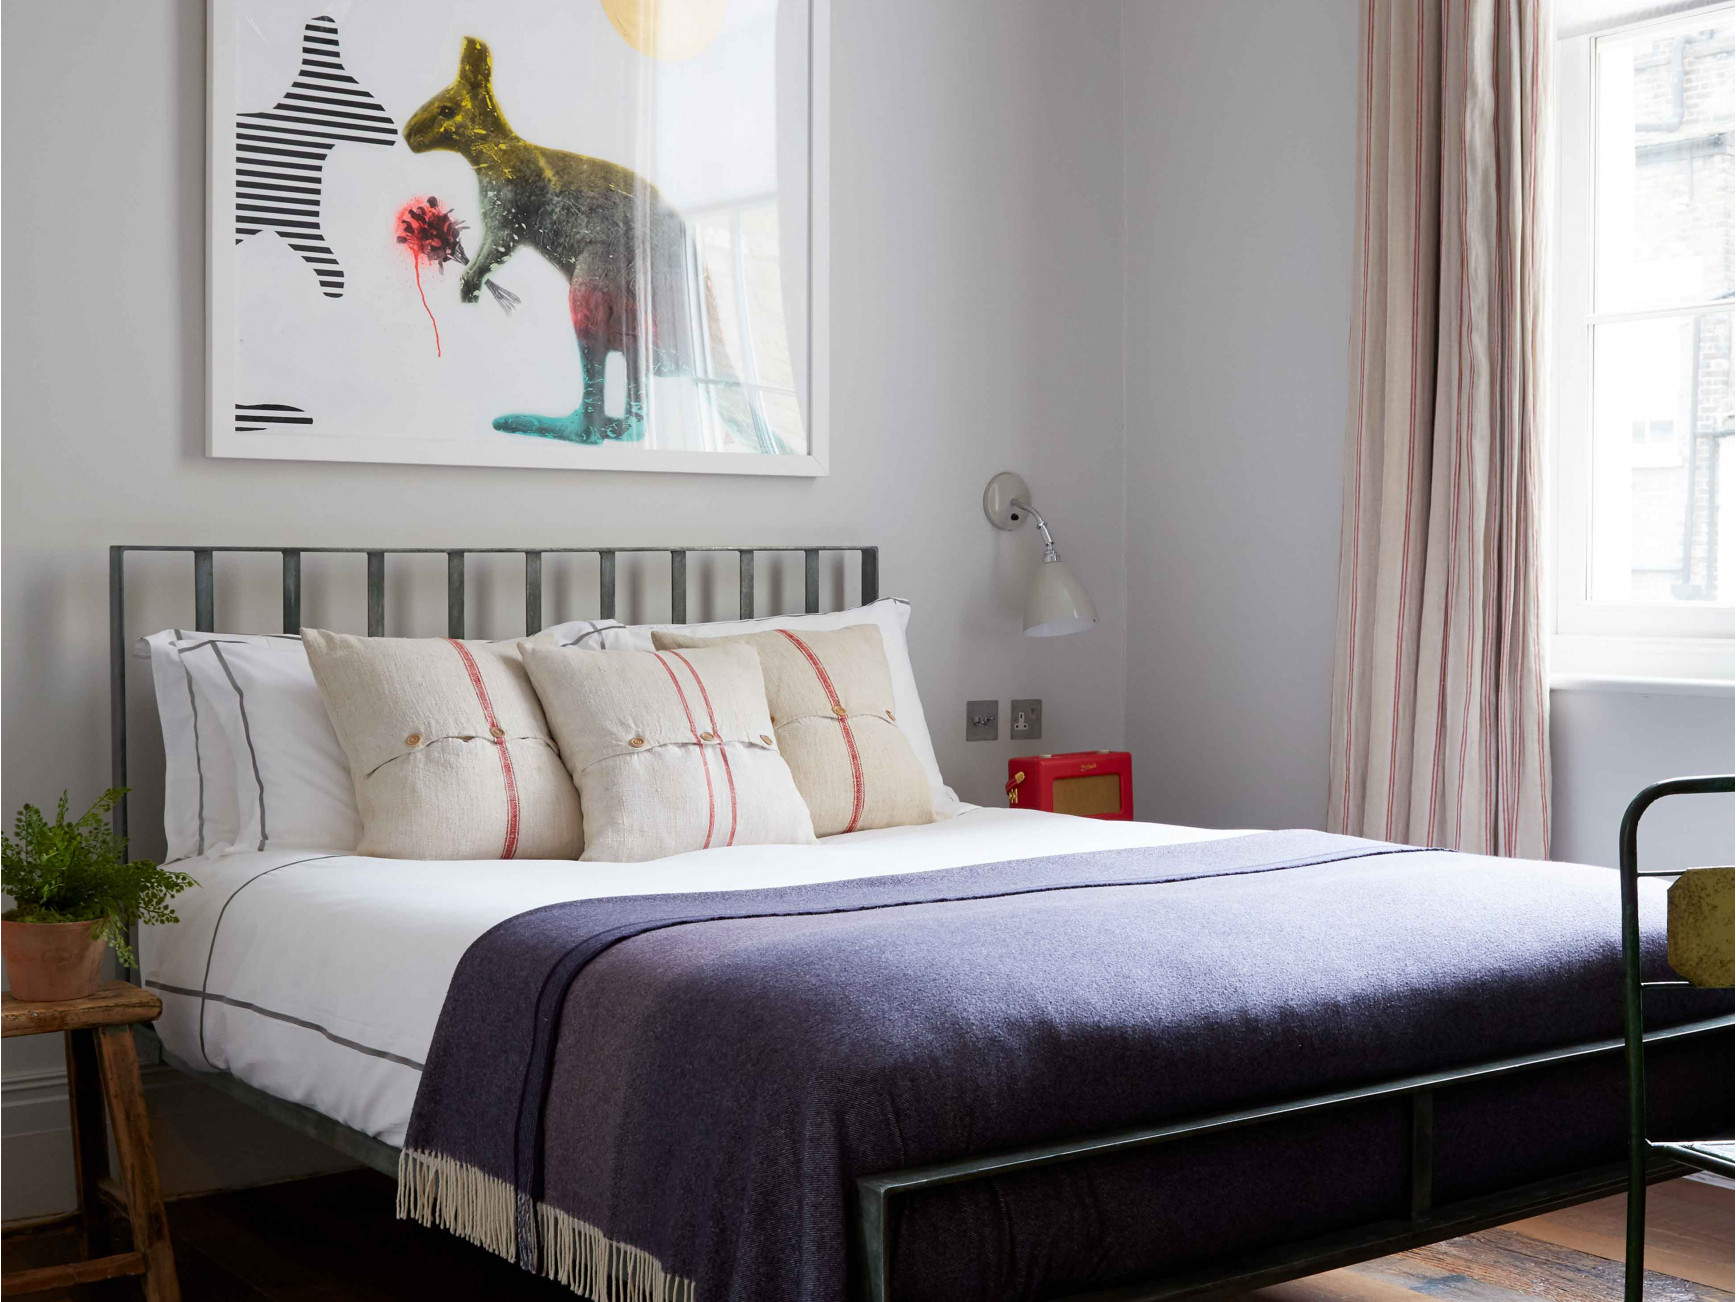 Rooms Cottages Penthouses Suites At Artist Residence London London